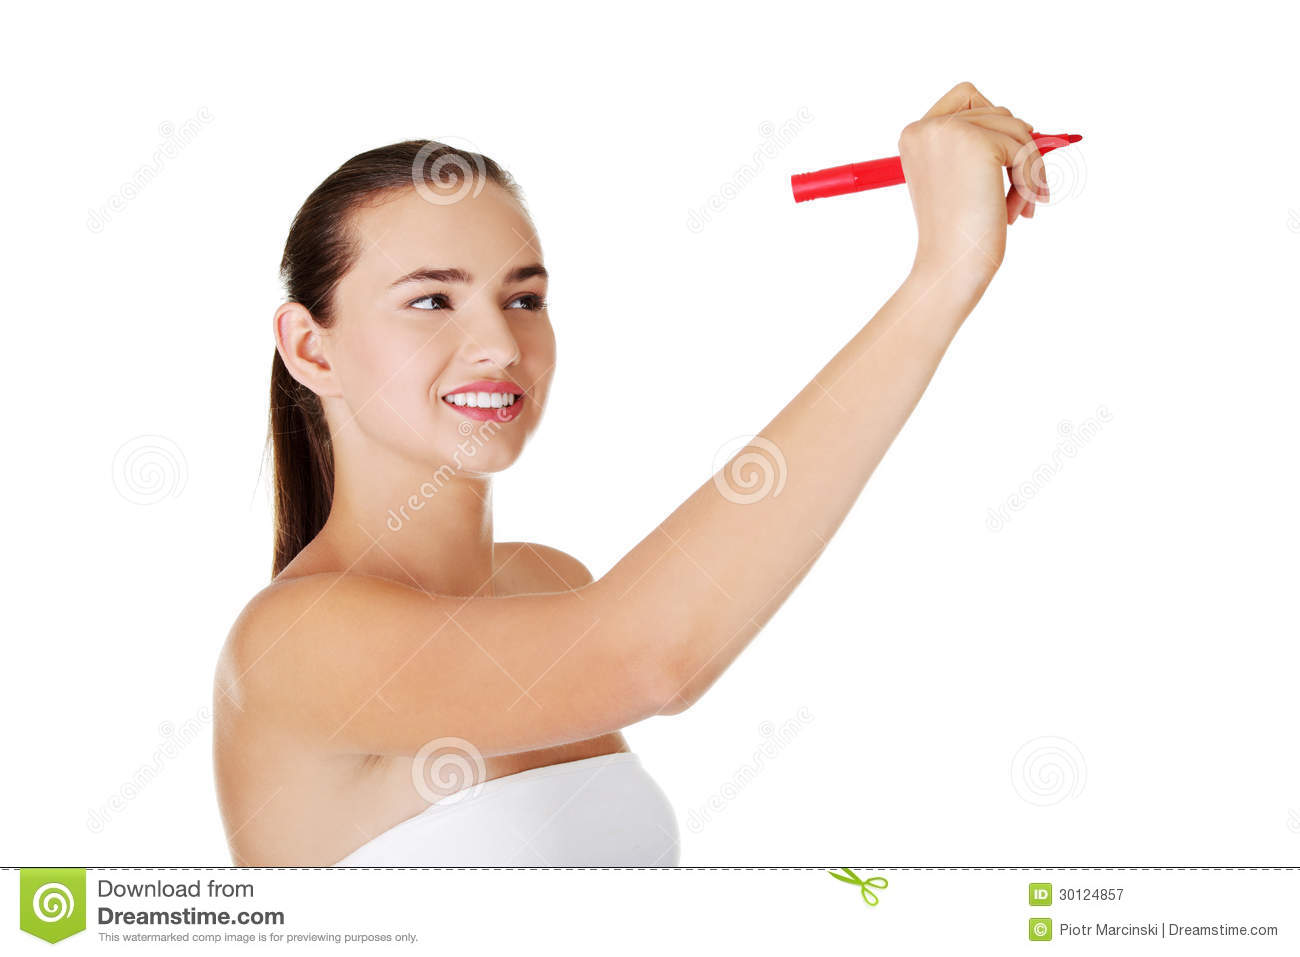 the woman in white 2 essay Research papers on women in world war ii women in world war ii research papers look at the roles women played during this time how do you start a women in world war ii research paper.